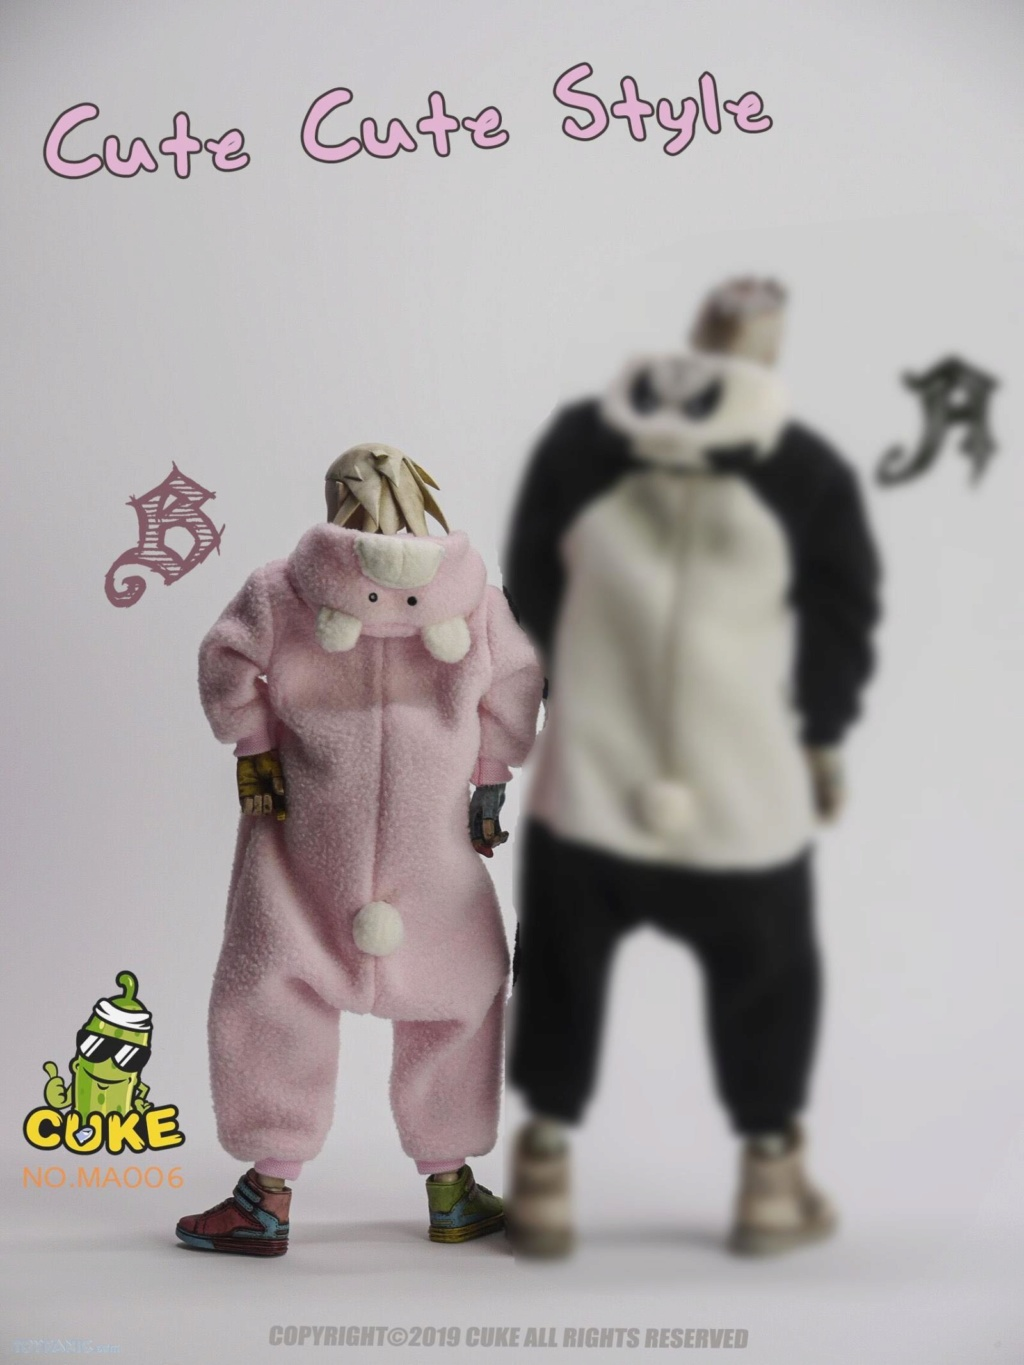 CukeToys - NEW PRODUCT: Cuke Toys: [CK-M006] 1/6 Cute Cute Style 11162014